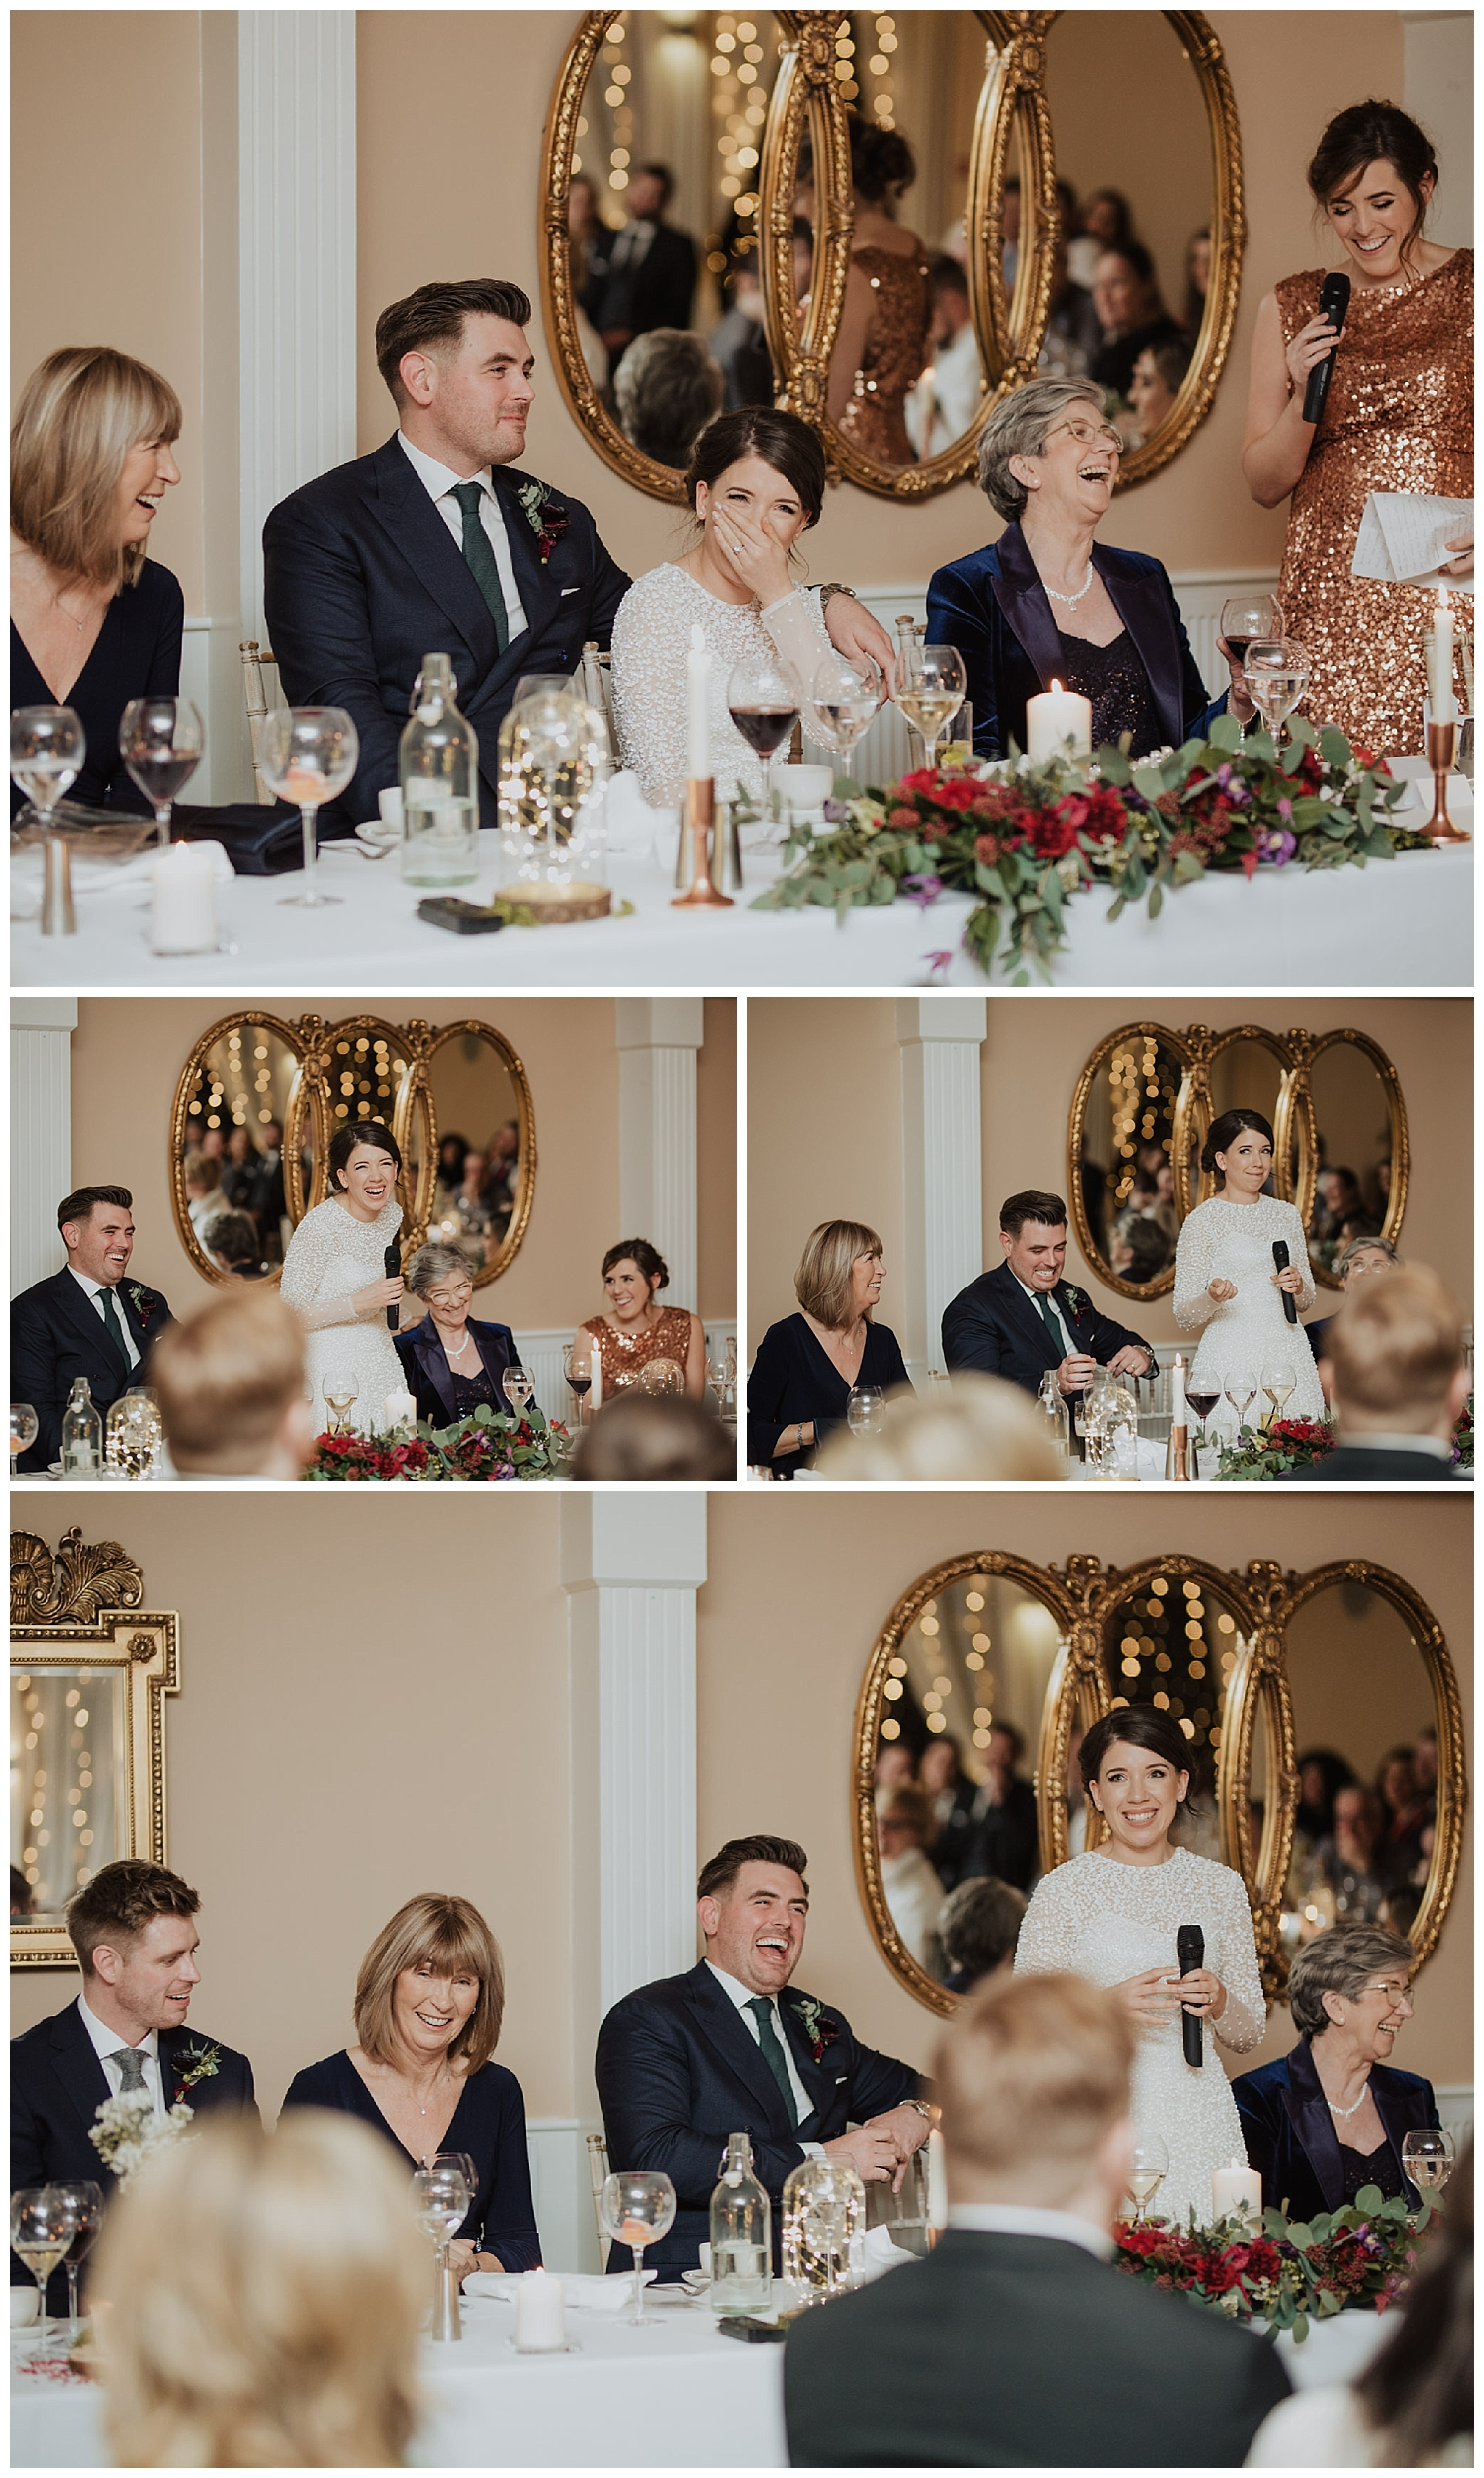 bellinter_house_wedding_livia_figueiredo_117.jpg